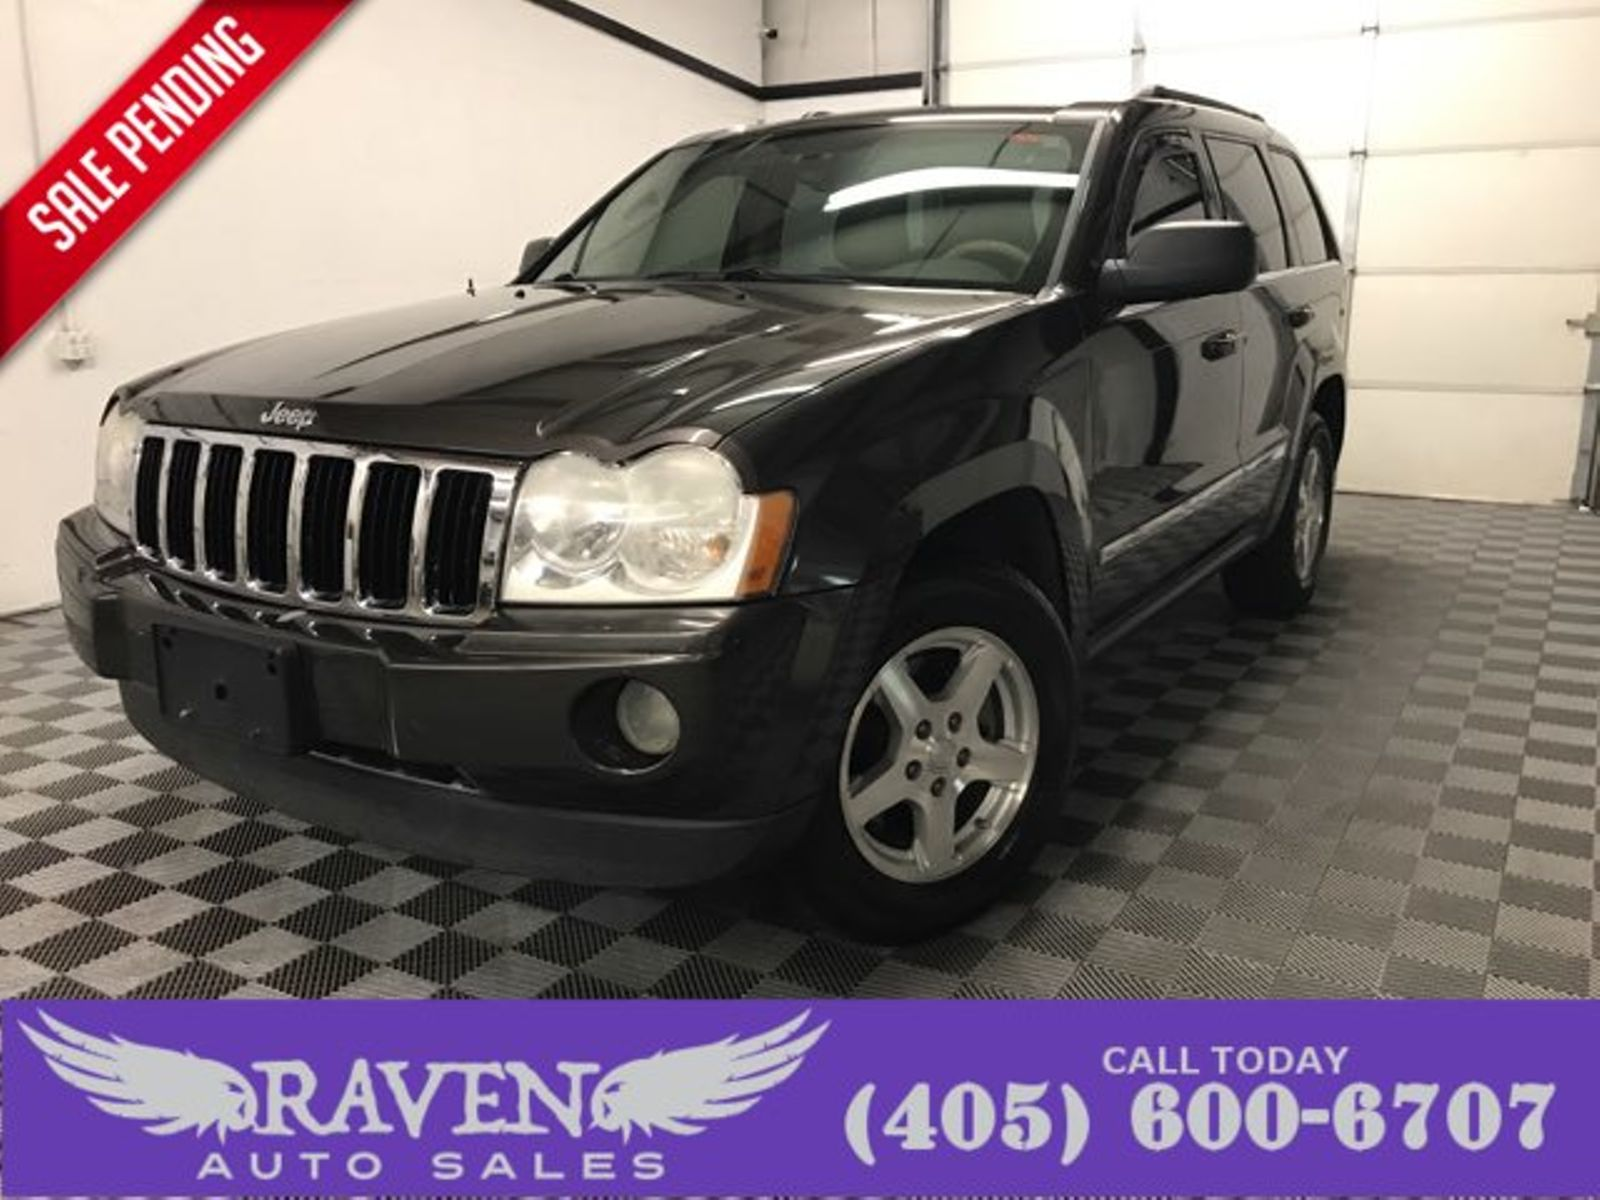 2006 Jeep Grand Cherokee Limited 4x4 Sunroof City Oklahoma Raven Trailer Wiring Harness Auto Sales In